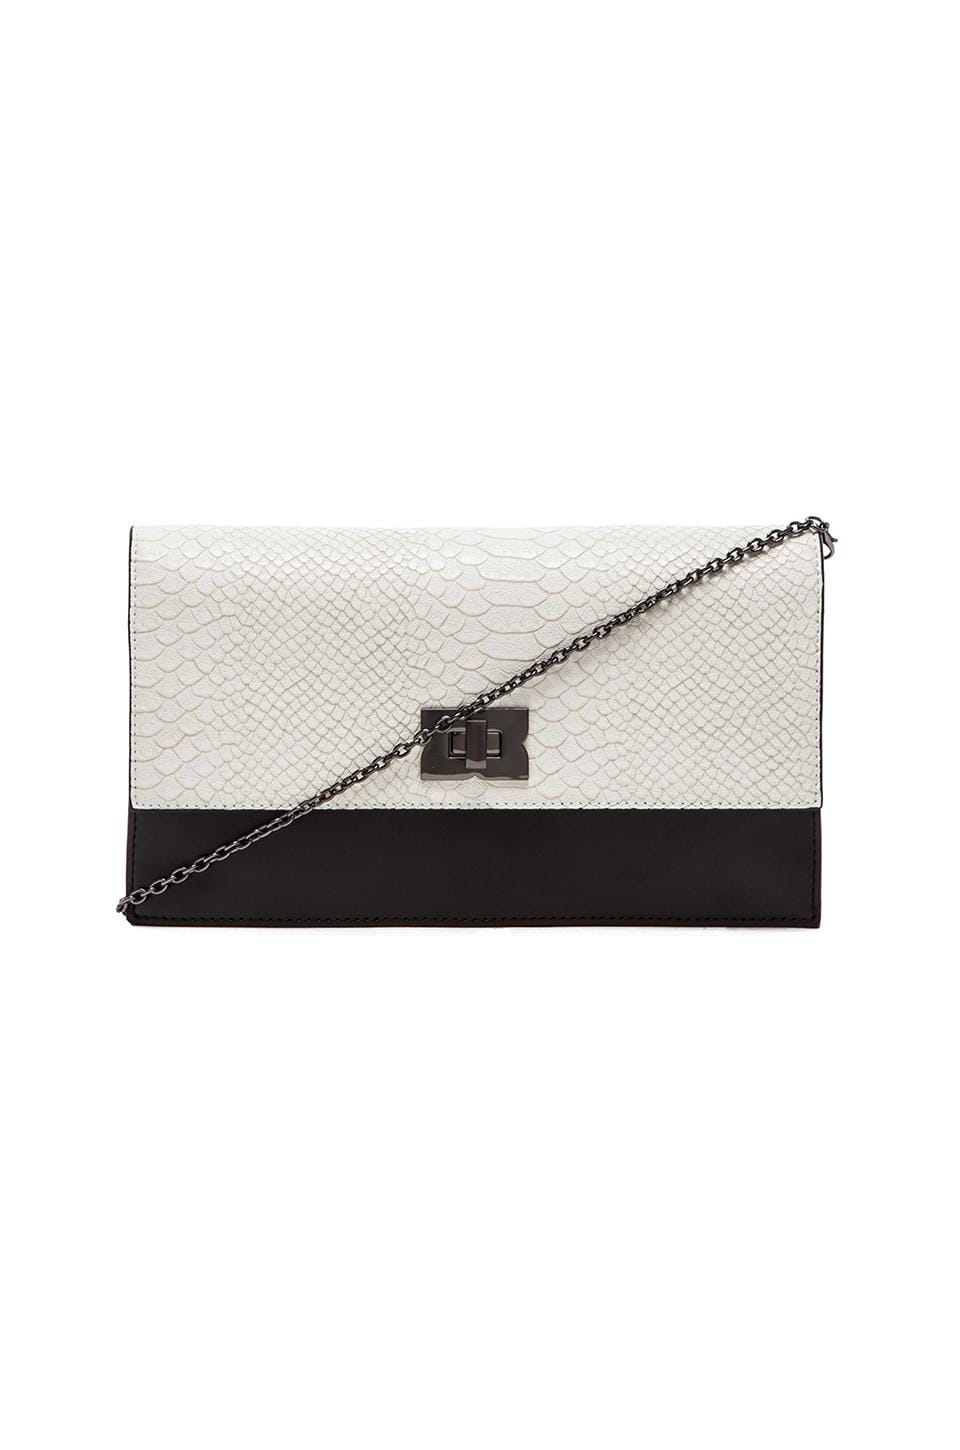 BCBGMAXAZRIA Penelope Blocked Clutch in White & Black